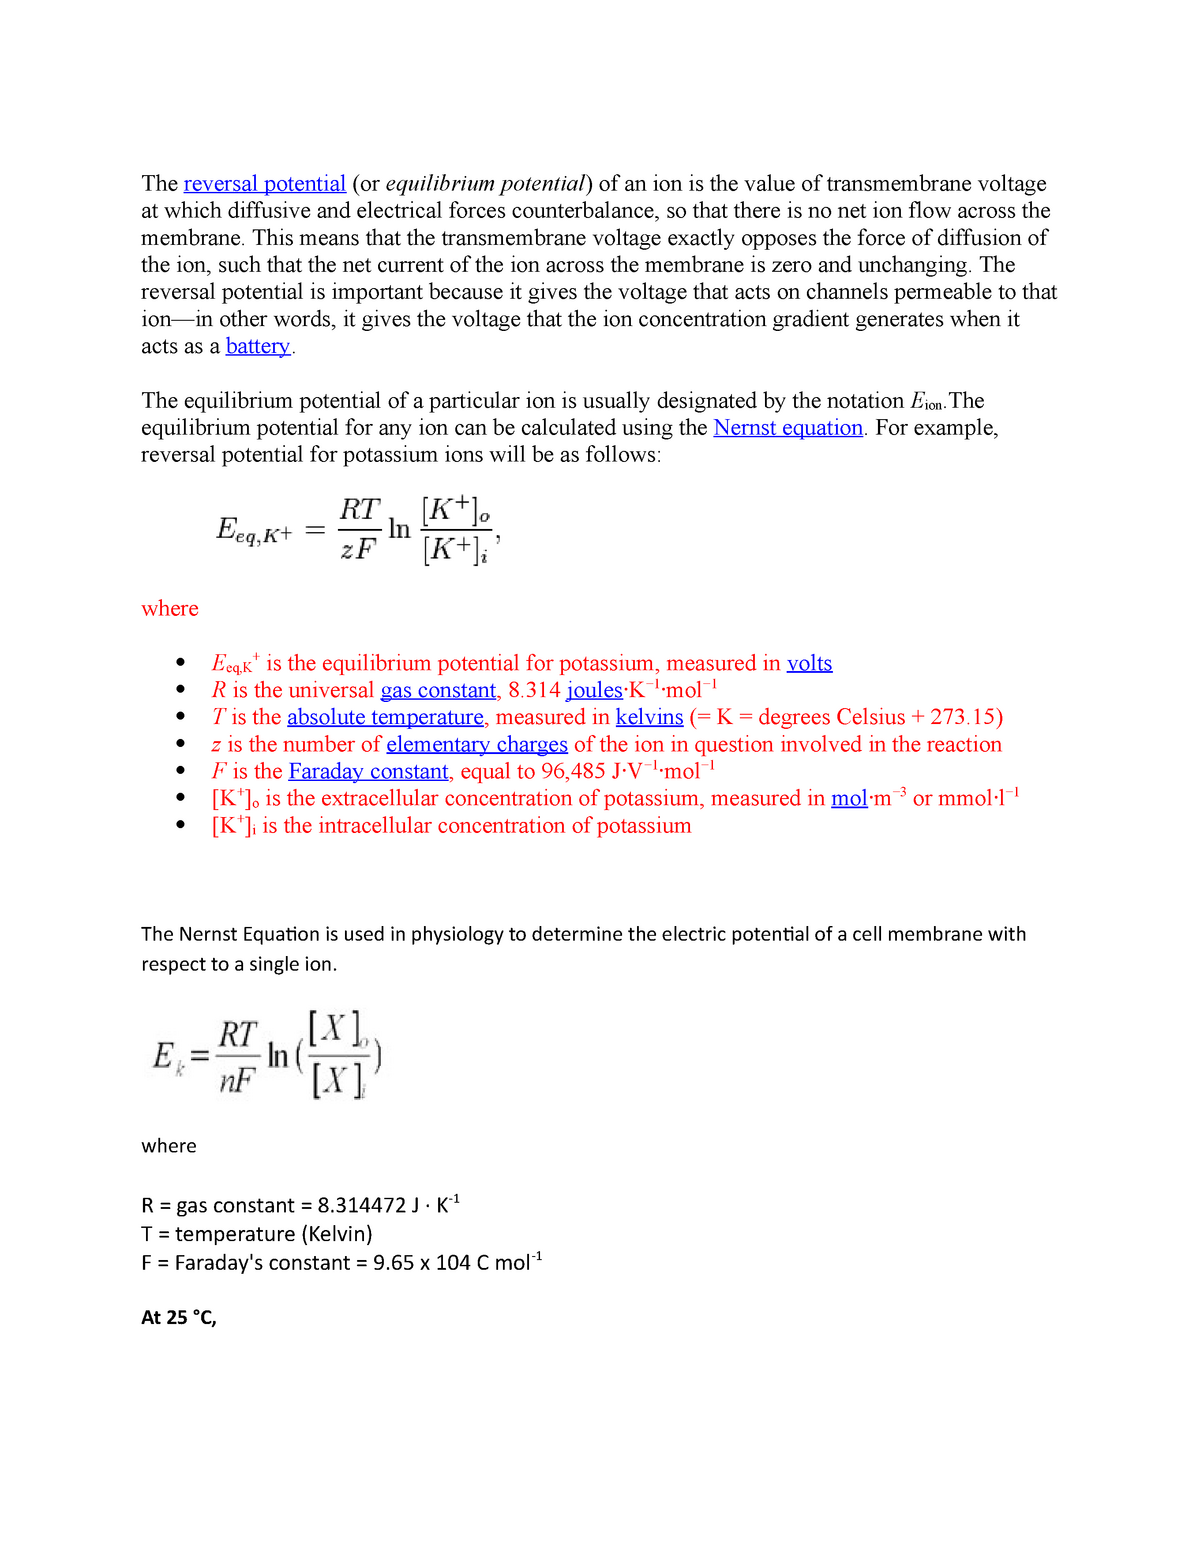 Nernst equation - Lecture notes Cell Biology lecture notes - BIO